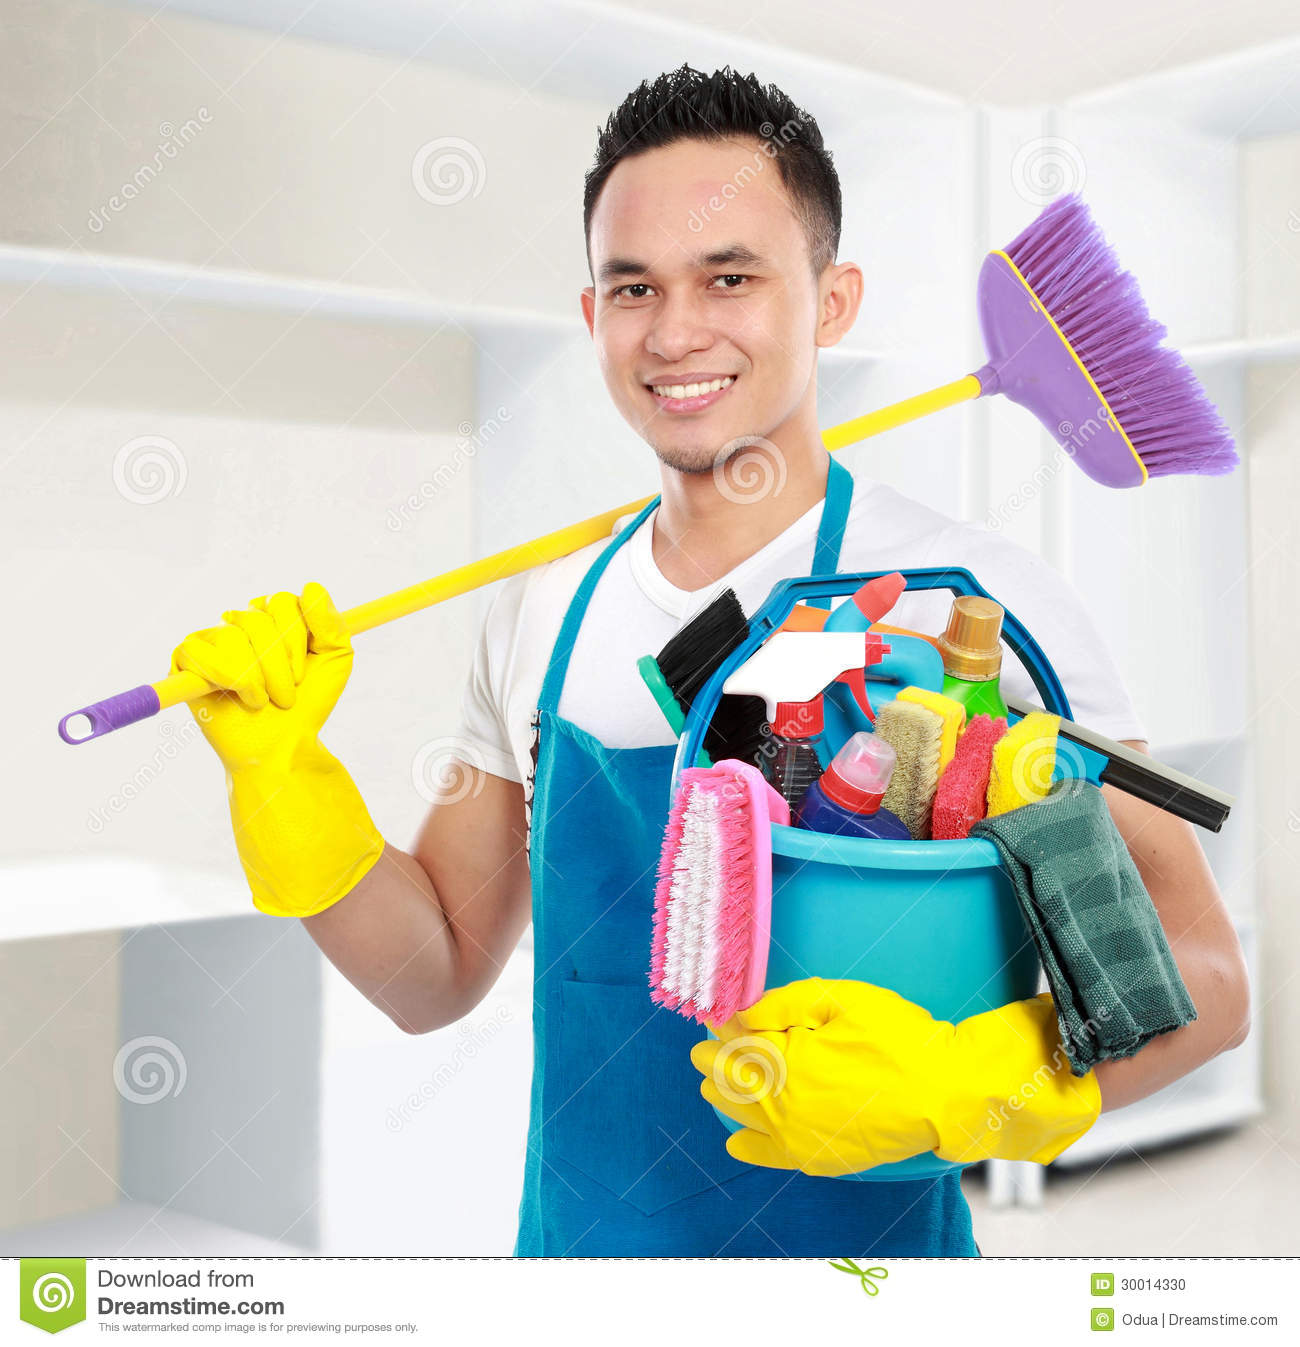 Male Cleaning Service Stock Photo Image 30014330